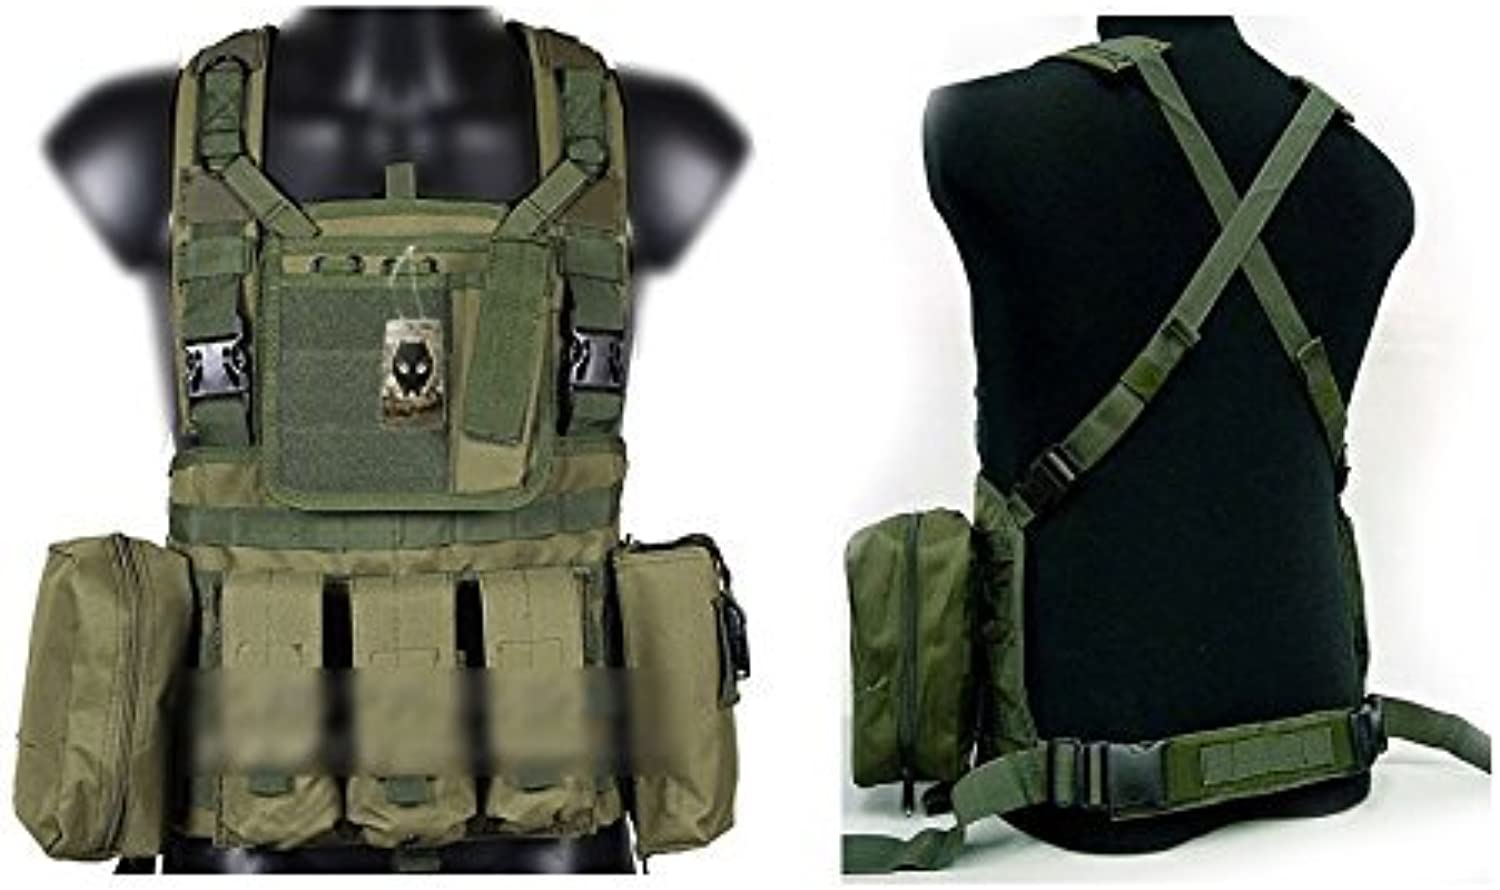 ATAIRSOFT Tactical Airsoft Paintball MOLLE RRV Assault VEST with magazine pouches OD Green